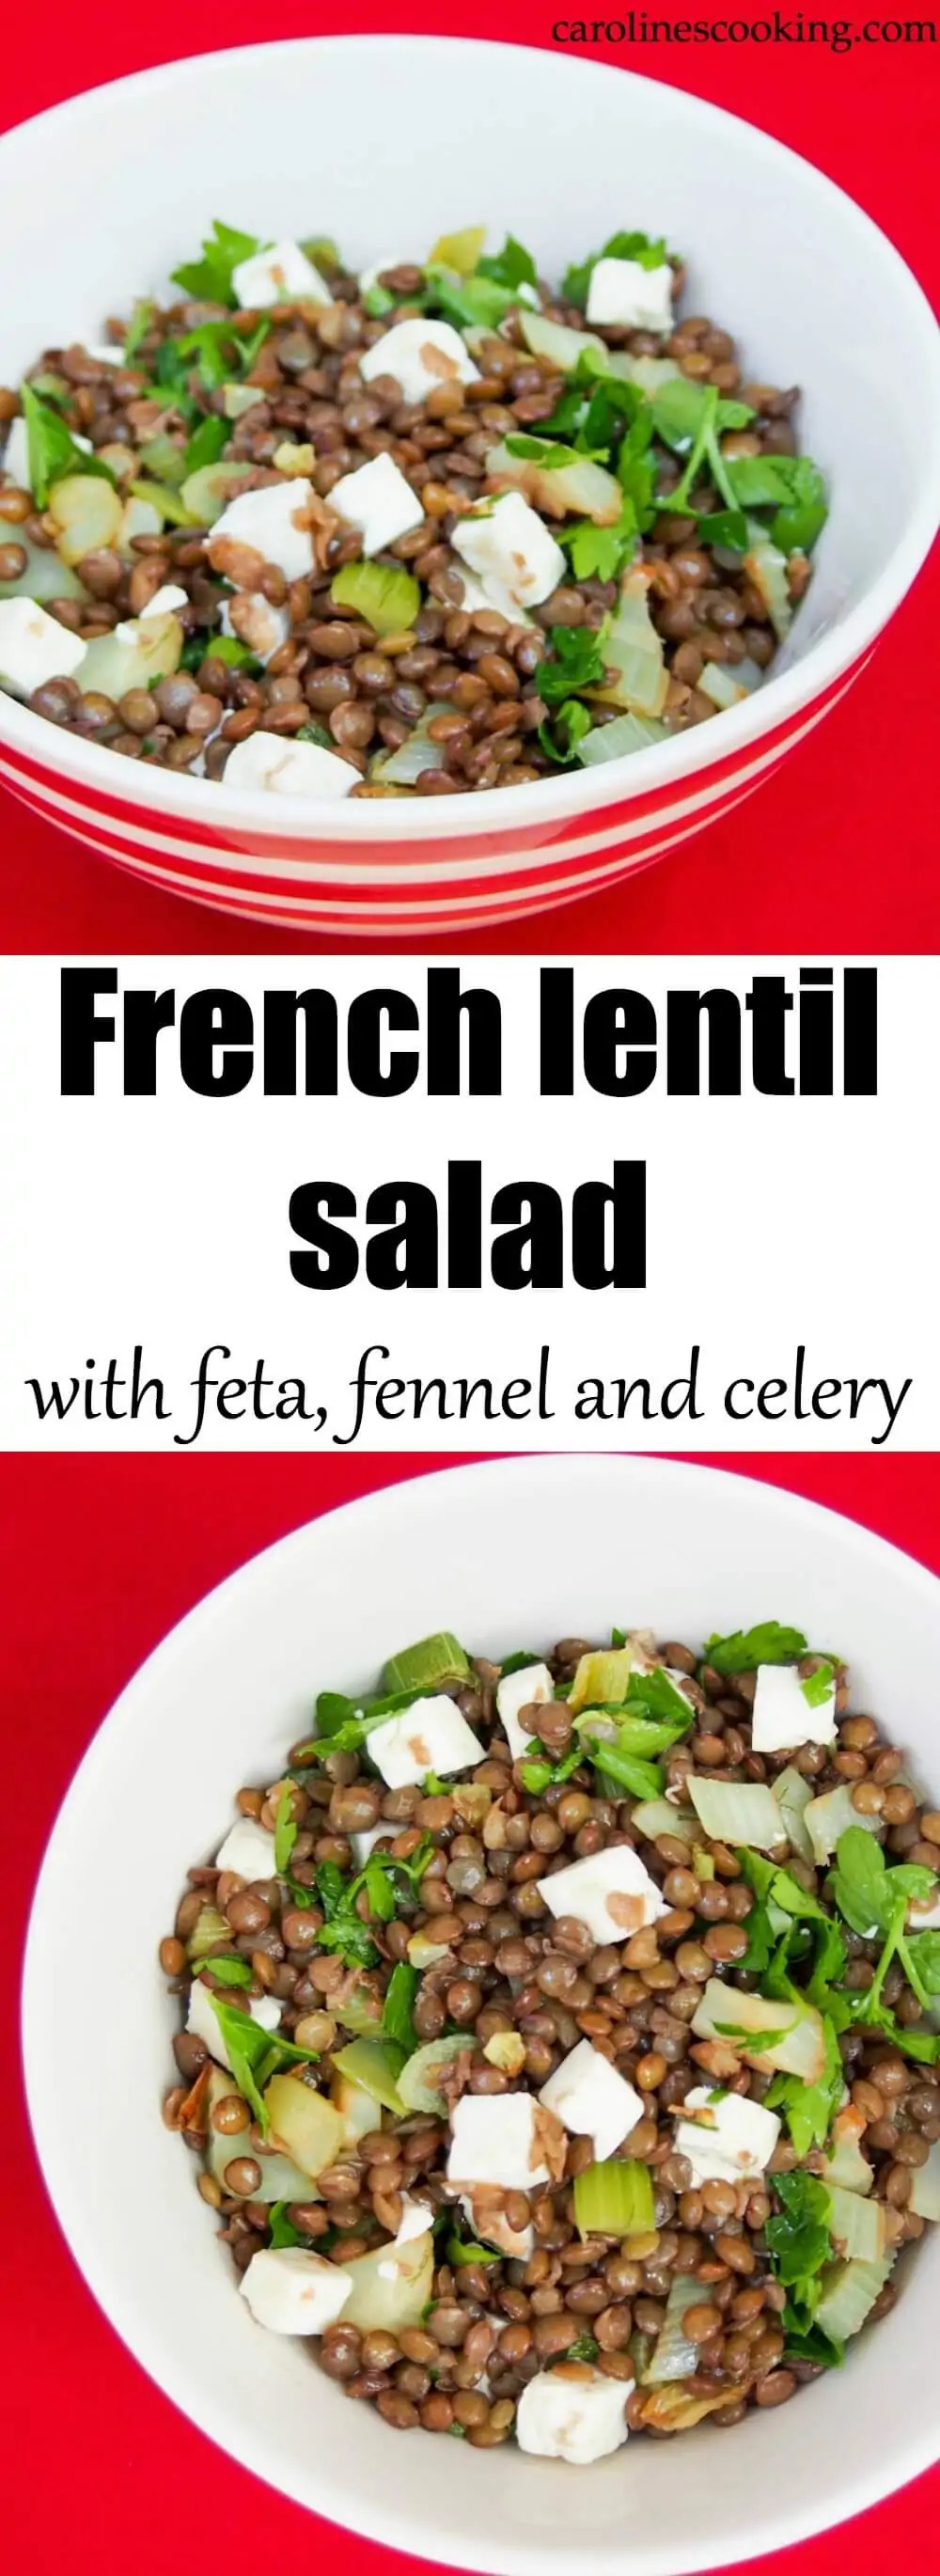 This French lentil salad with feta, fennel and celery is aromatic and flavorful. Making a hearty & healthy lunch, or side, it's also easy to make. Delicious